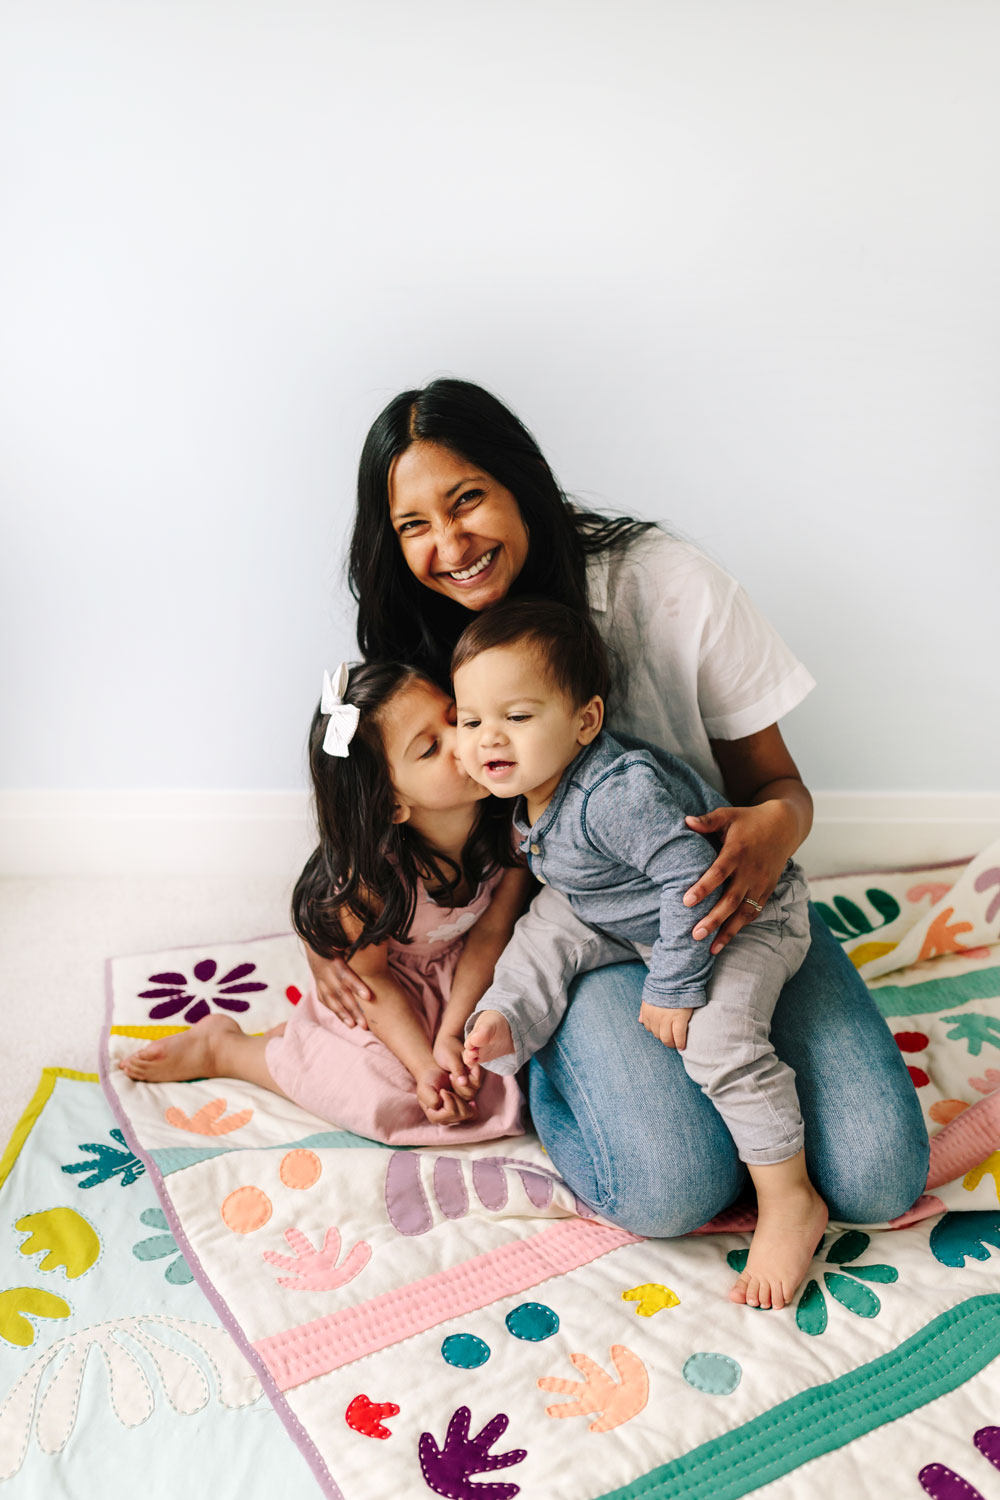 An adorable family photoshoot with a handmade quilt. This Bohemian Garden quilt pattern was inspired by the paper cut-outs of Henri Matisse